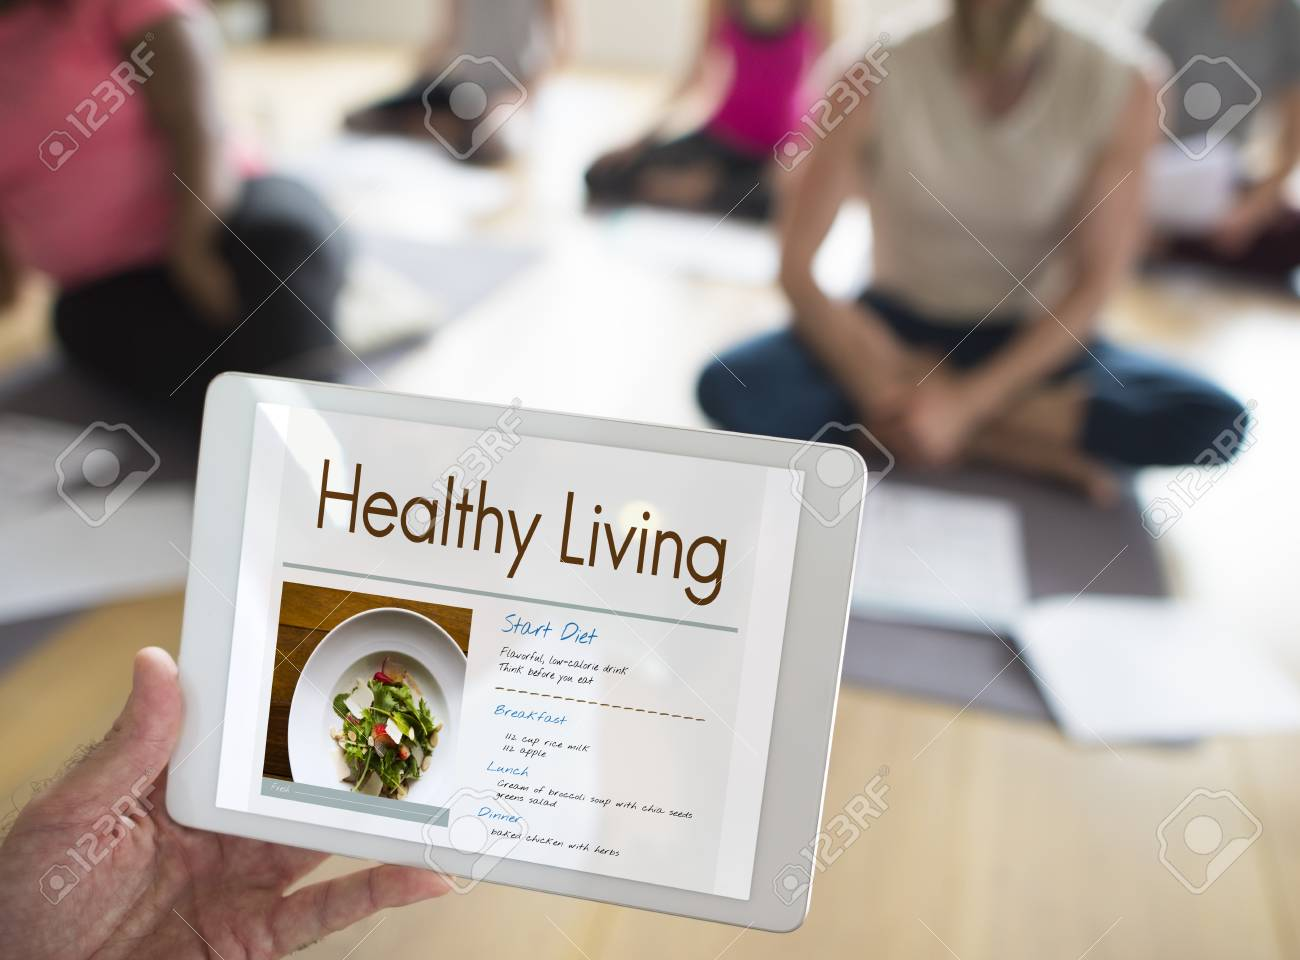 Diet plan for healthy life - Wellness Diet Plan Healthy Living Icon Stock Photo 81391255